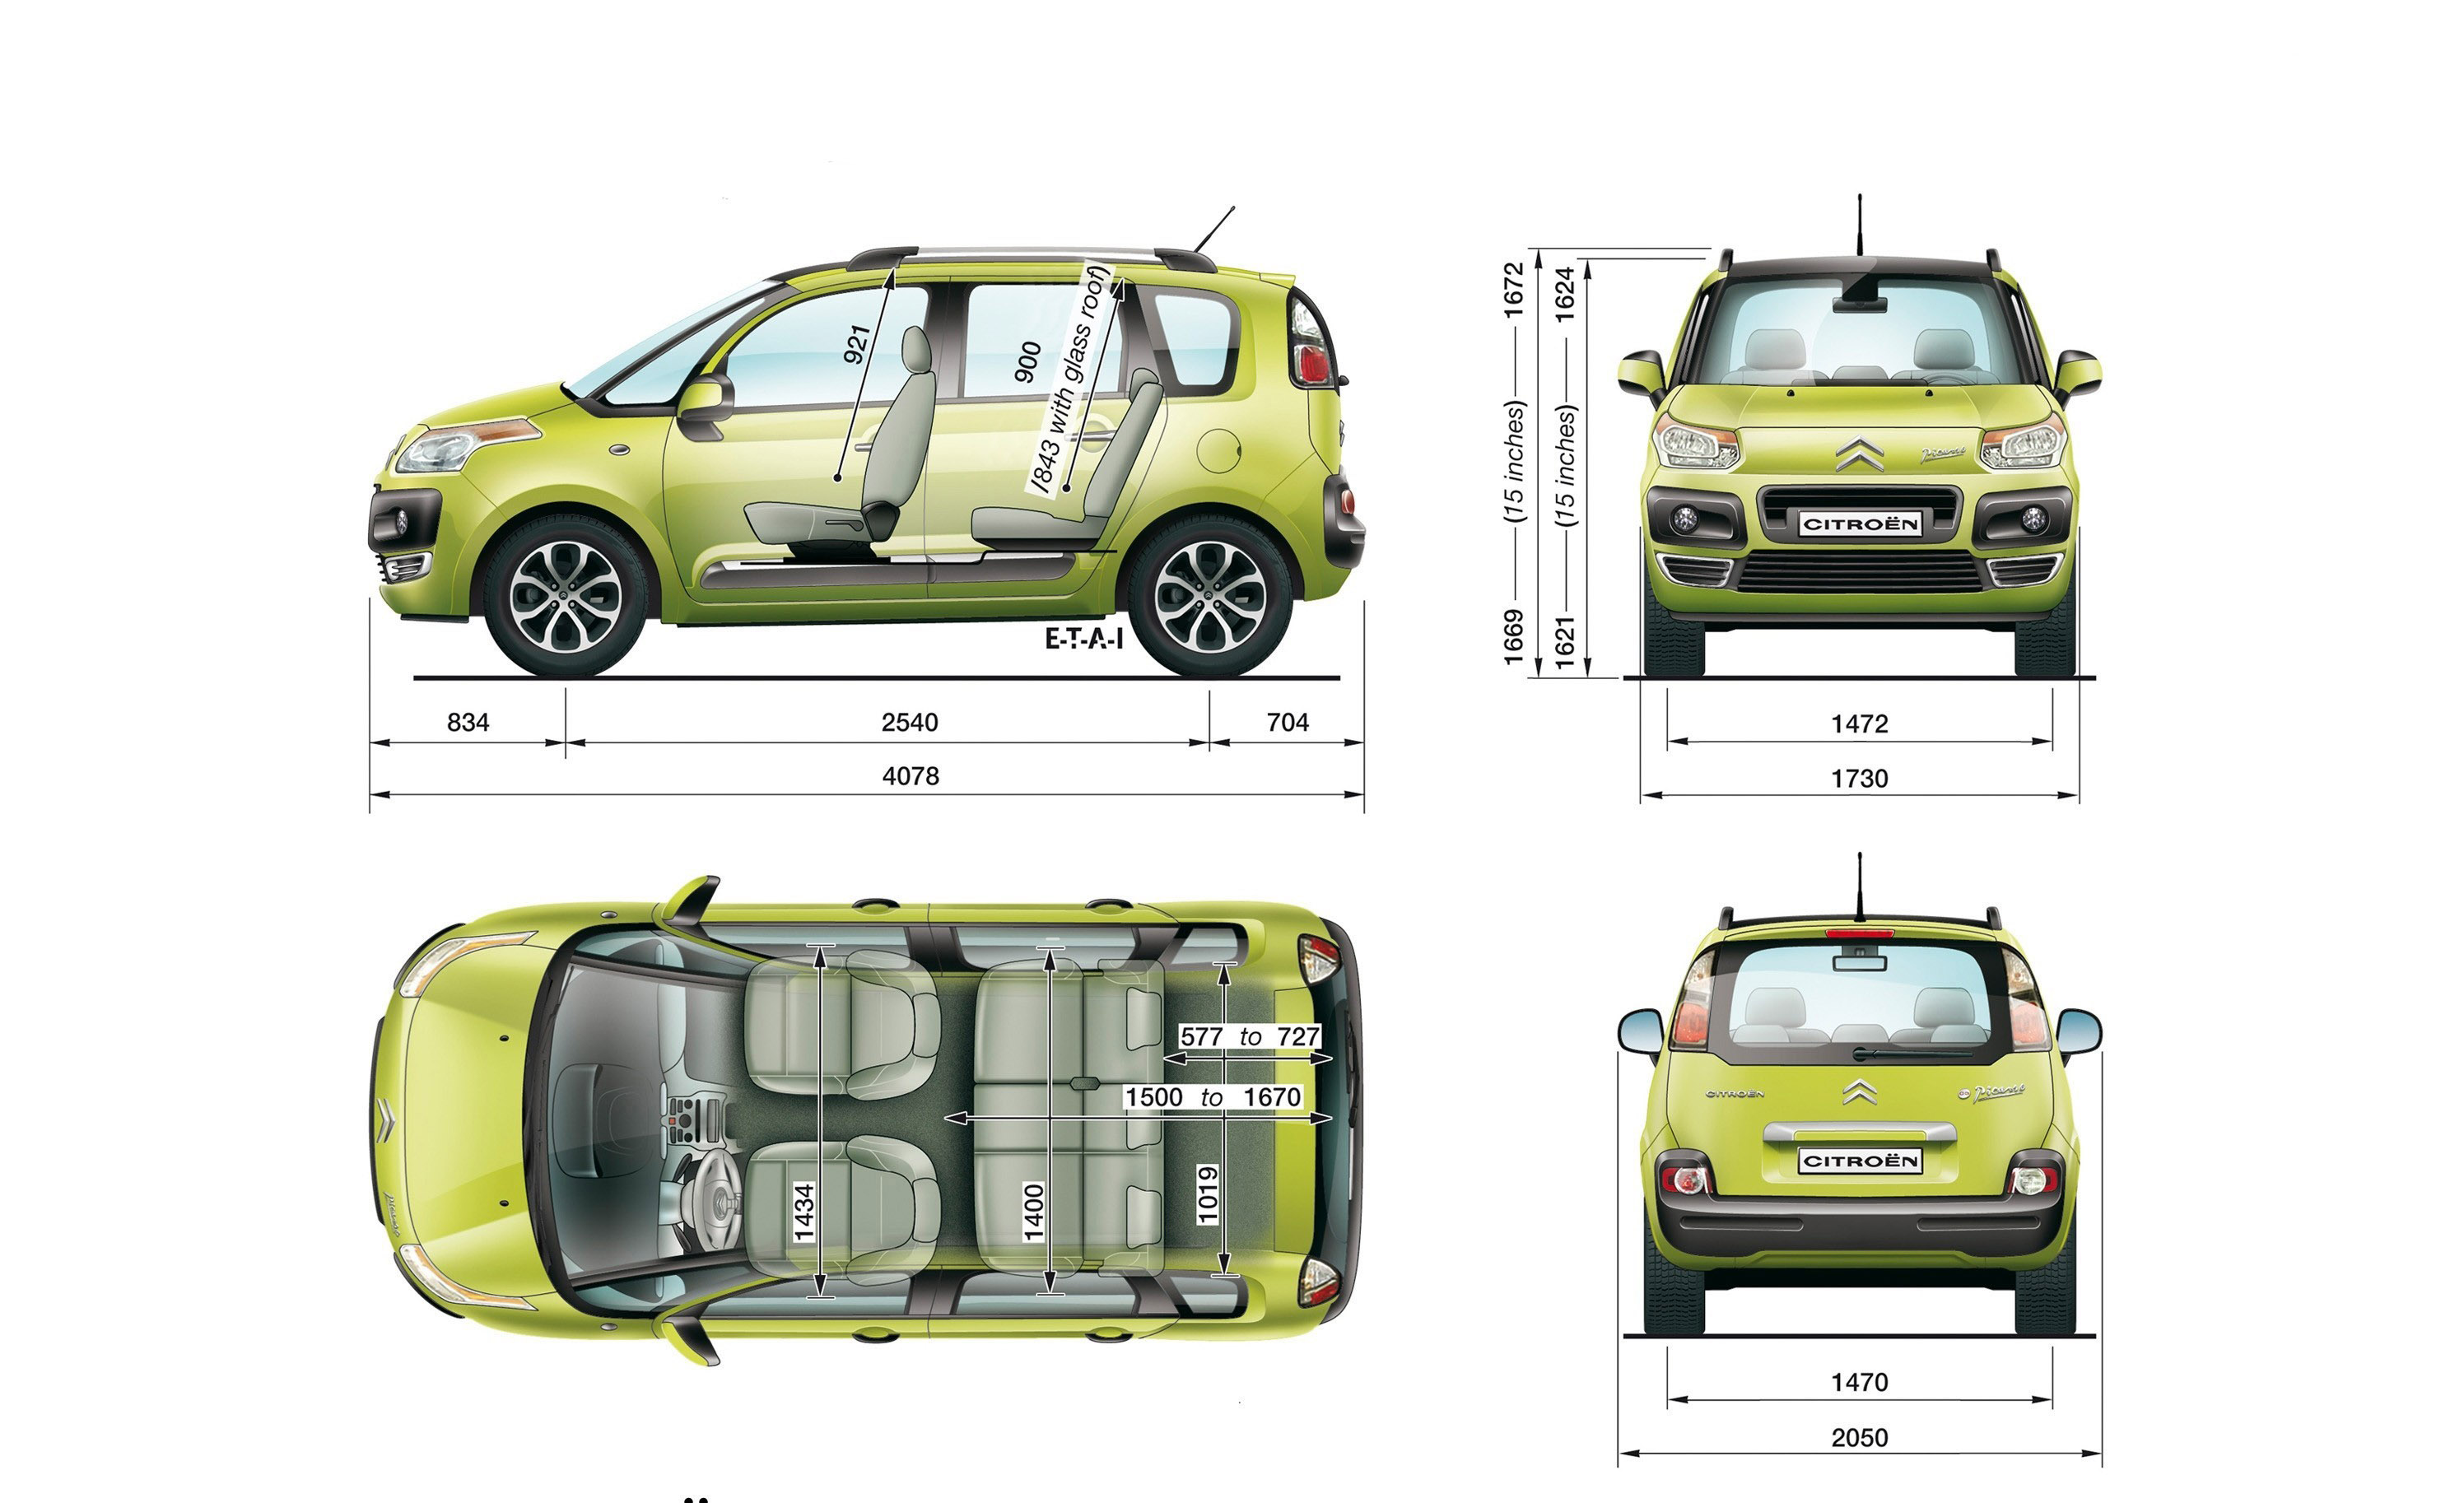 Citroen C3 Picasso - Thinking Outside The Box